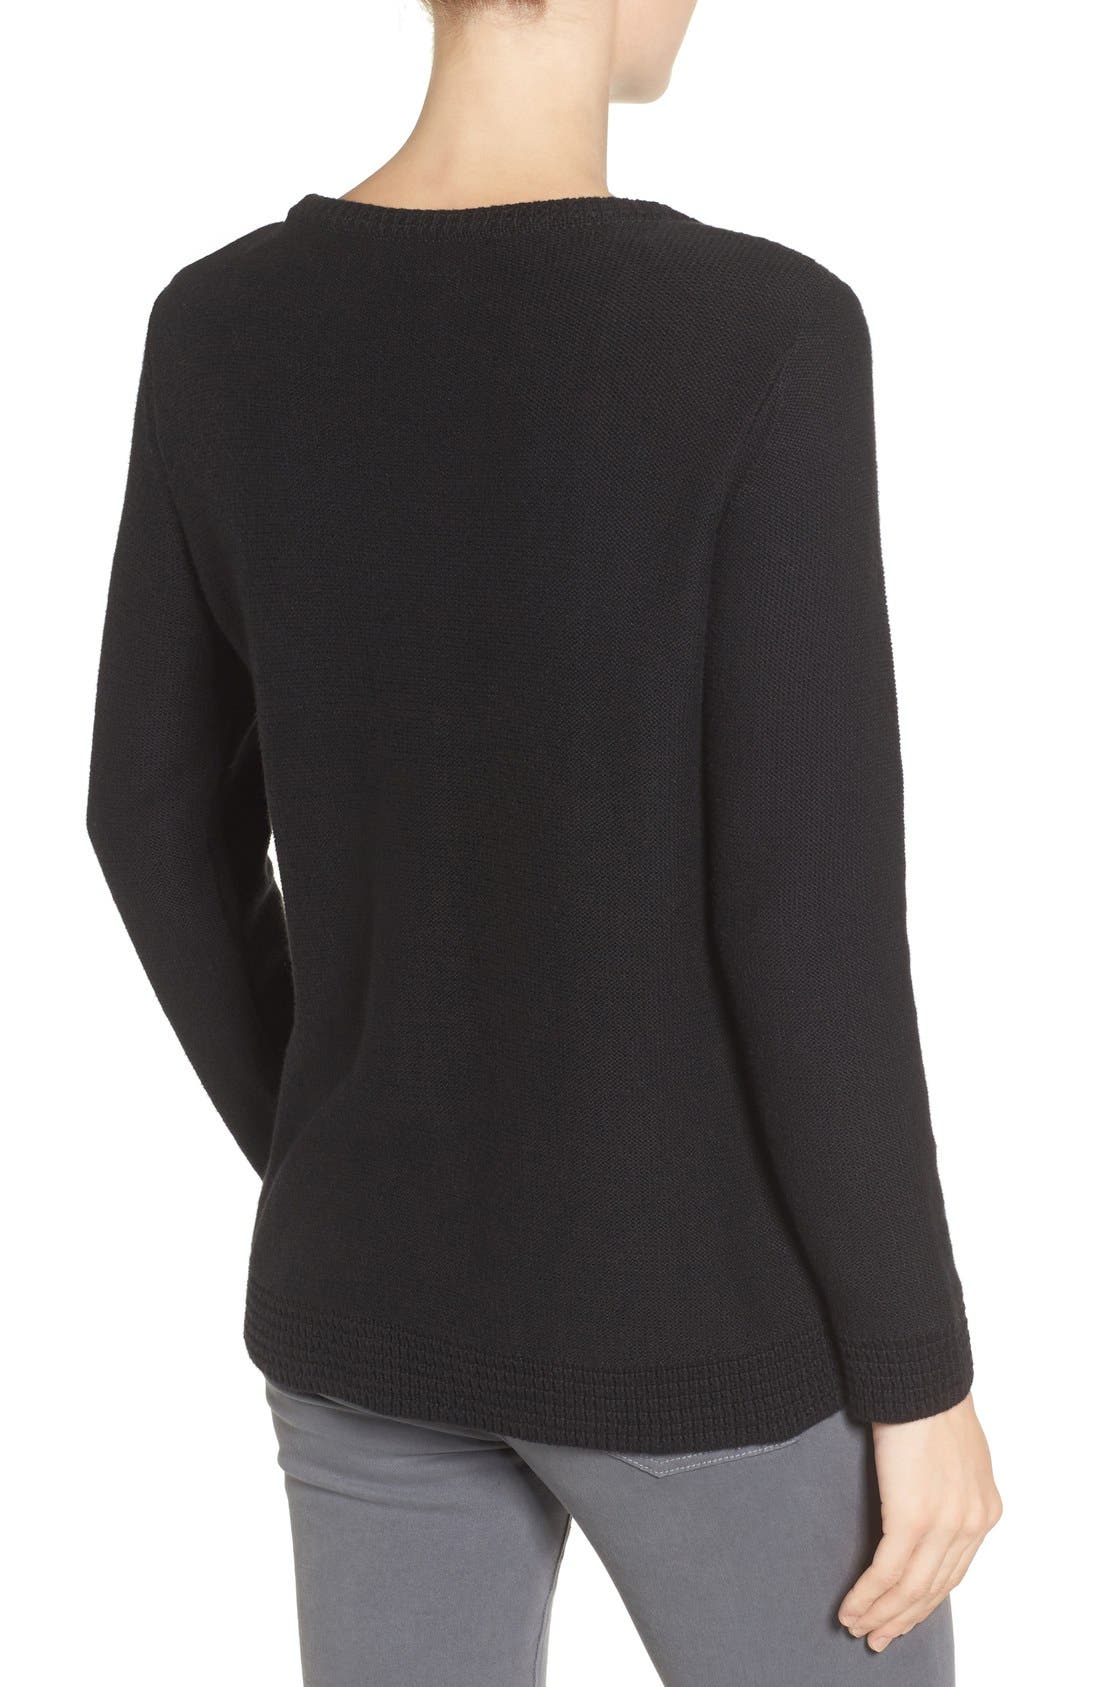 Wiley Maternity/Nursing Sweatshirt,                             Alternate thumbnail 7, color,                             BLACK